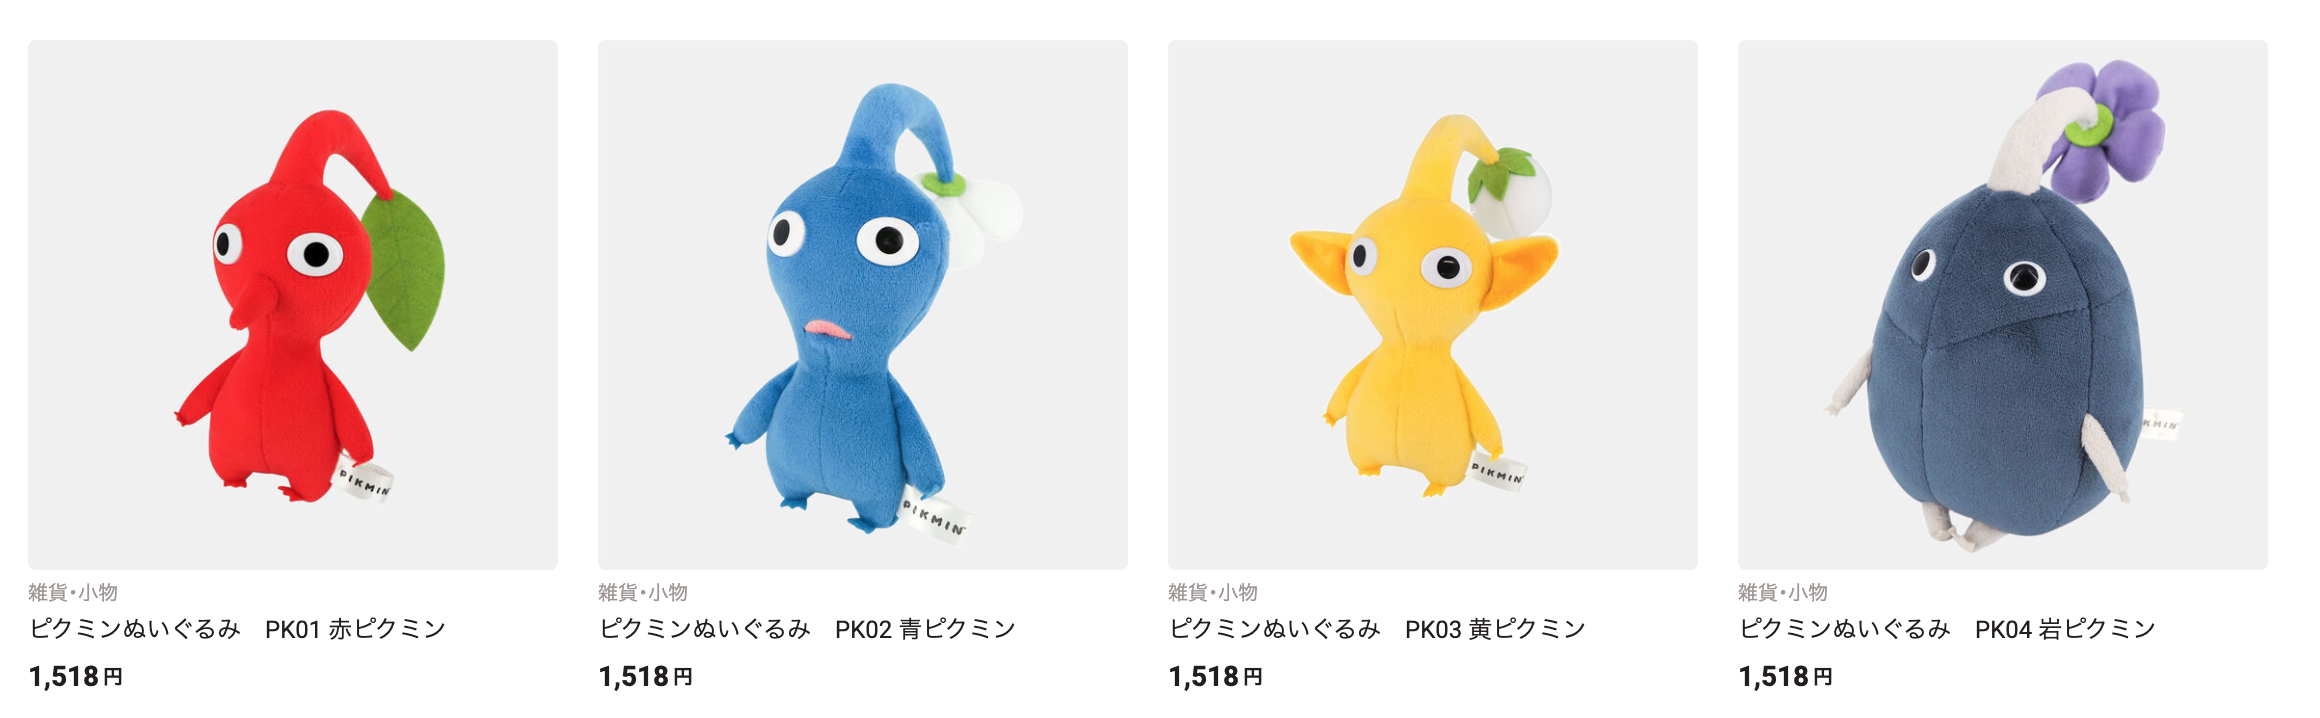 Pikmin Plush at Nintendo's Japanese store